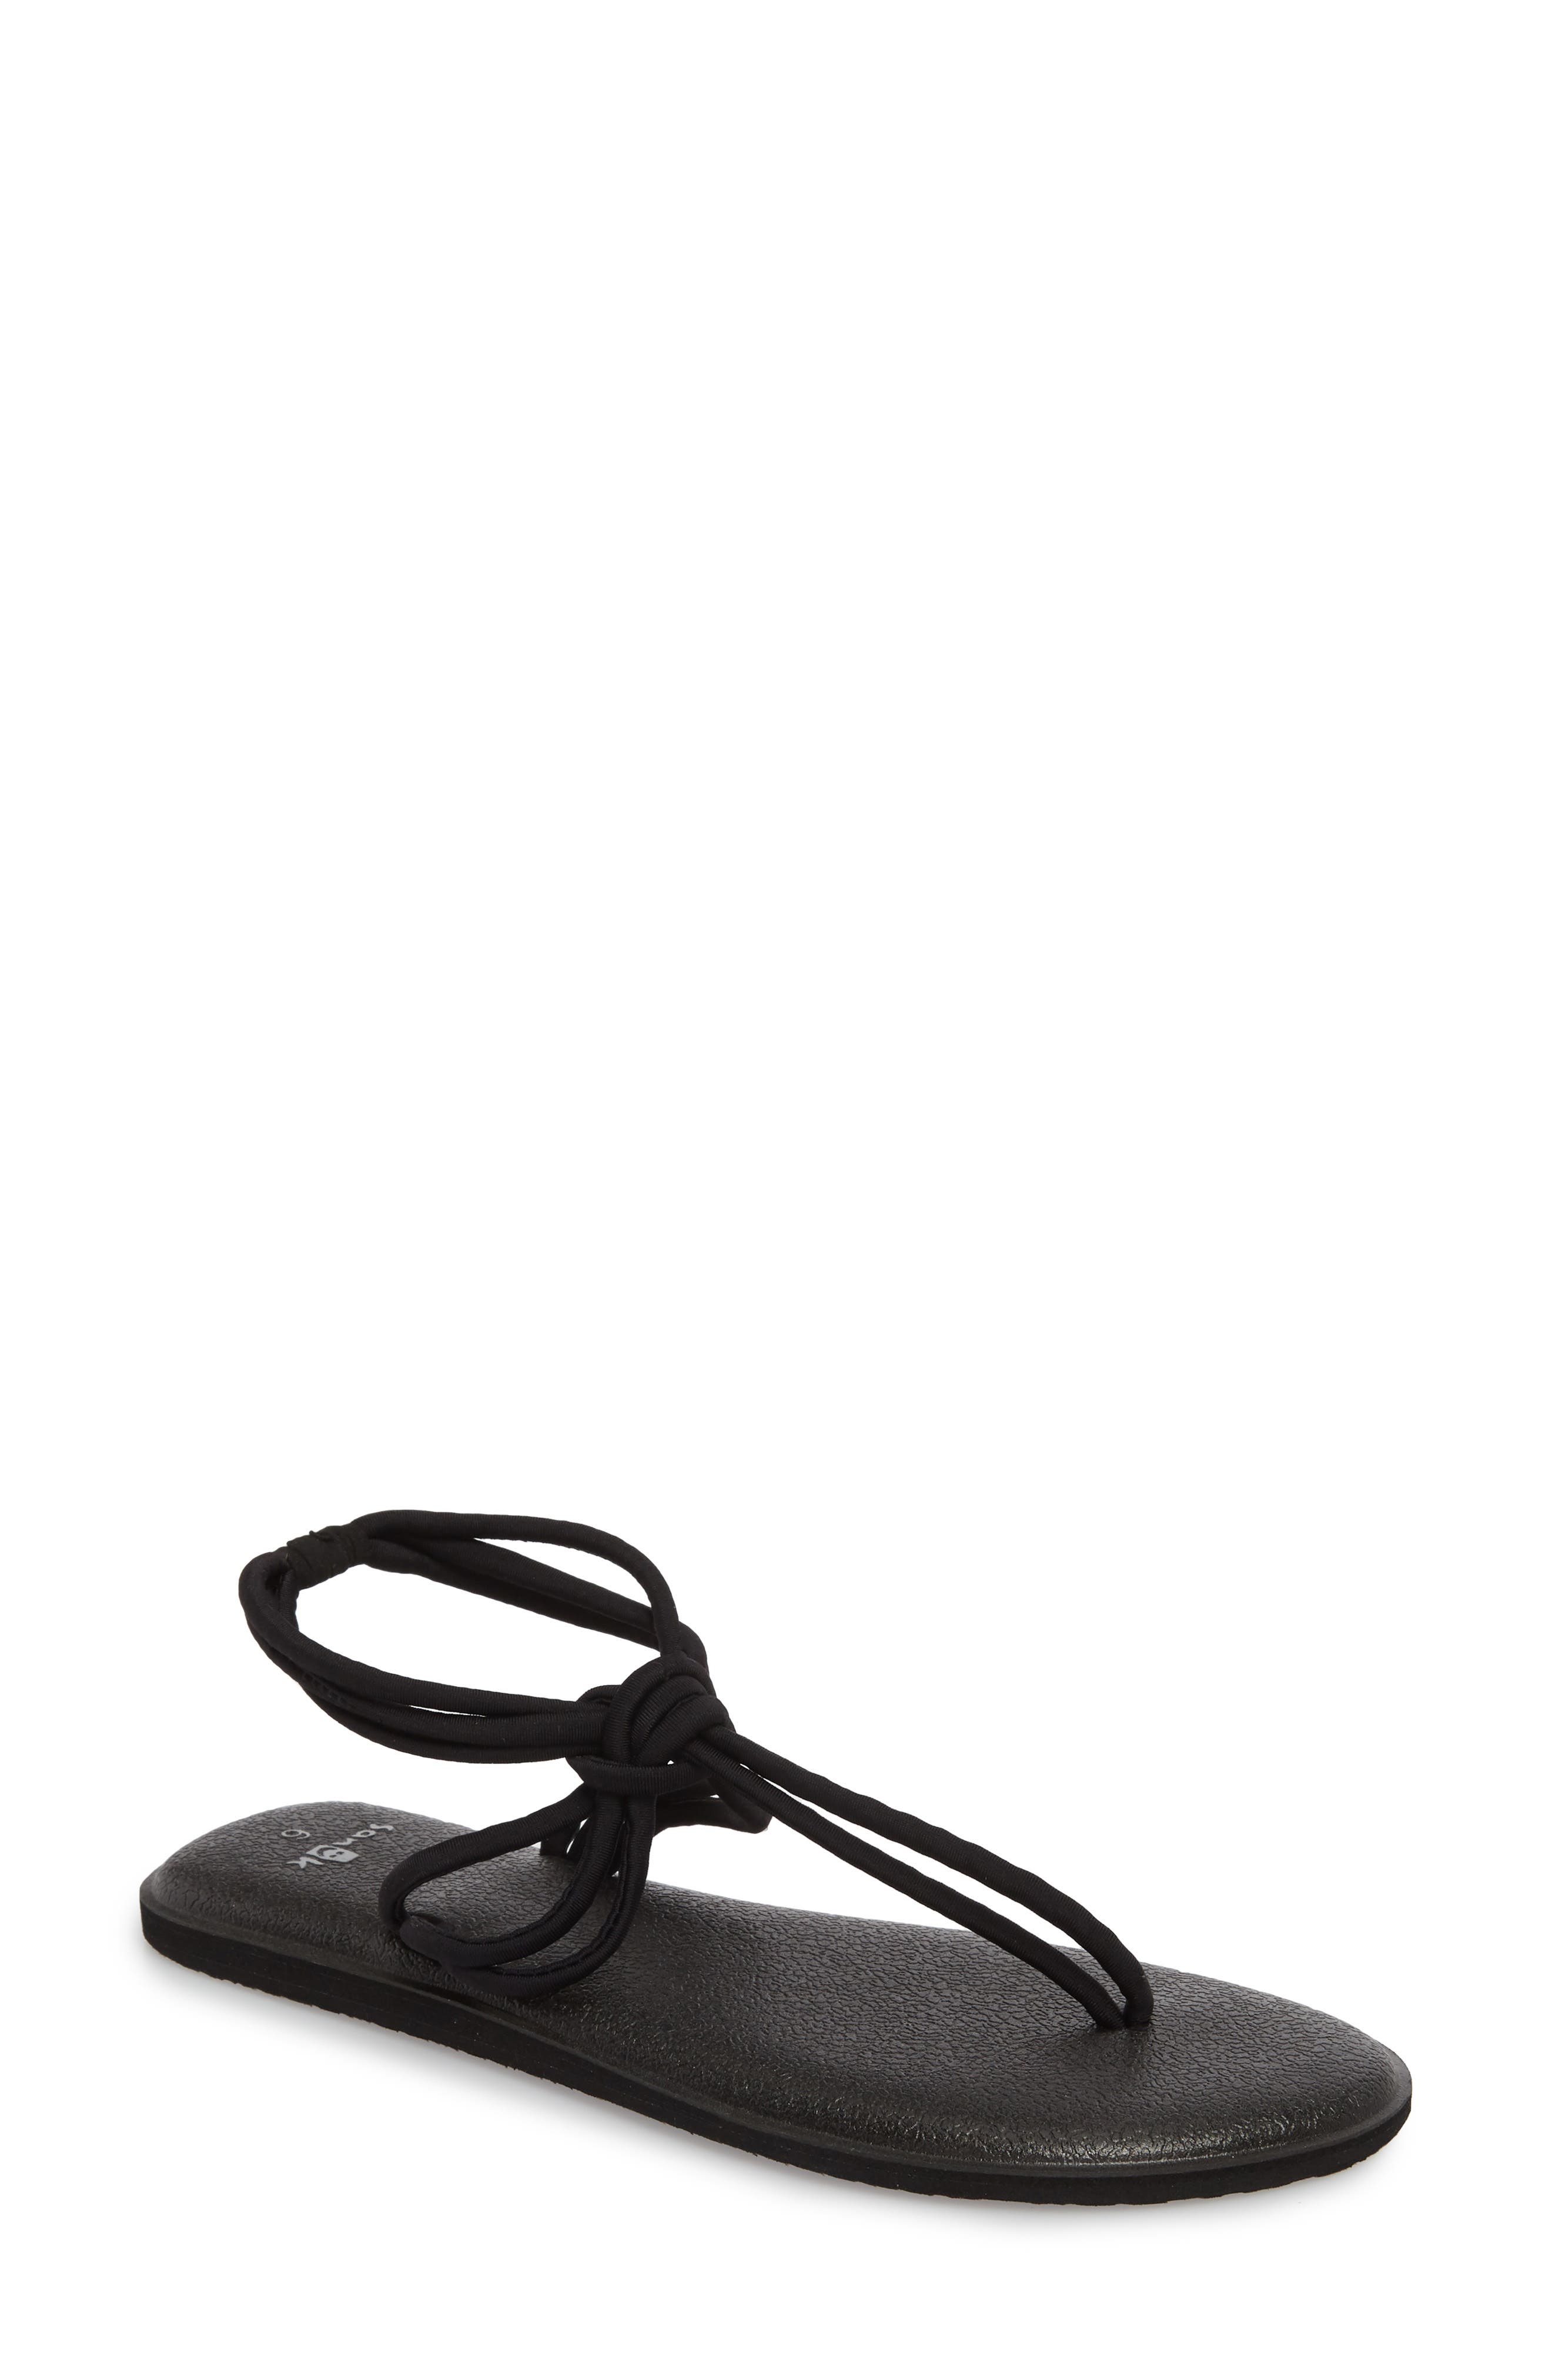 Yoga Sunshine Knotted Thong Sandal,                         Main,                         color, 001